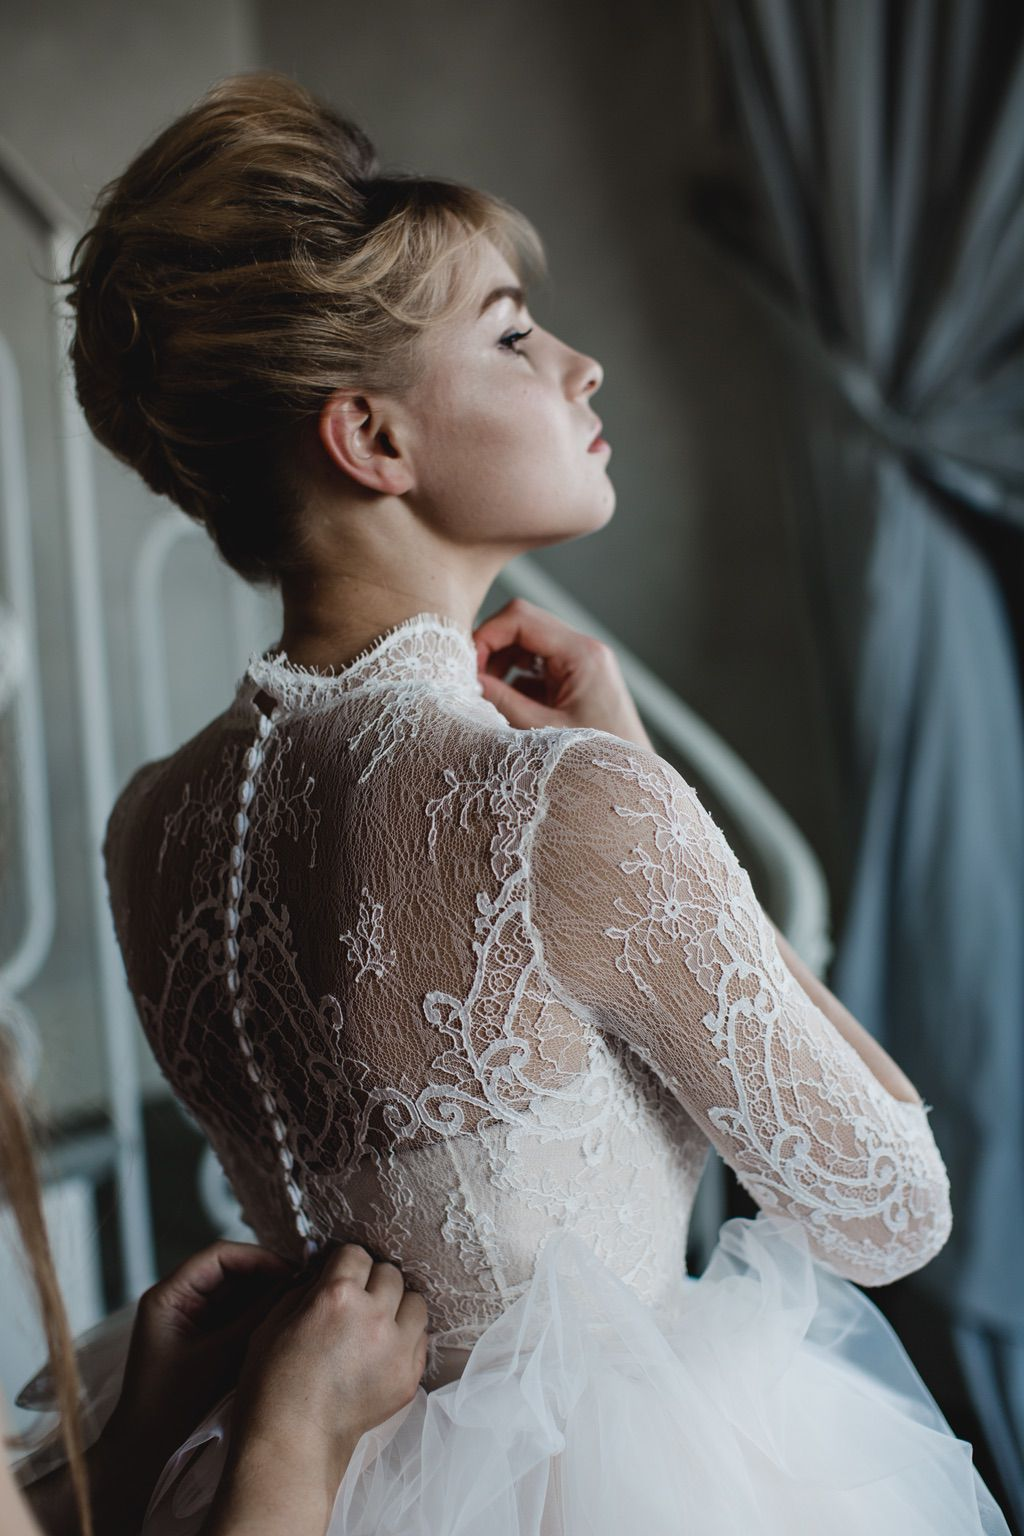 Pink and white lace luxury wedding bridal wedding dress in Firenze